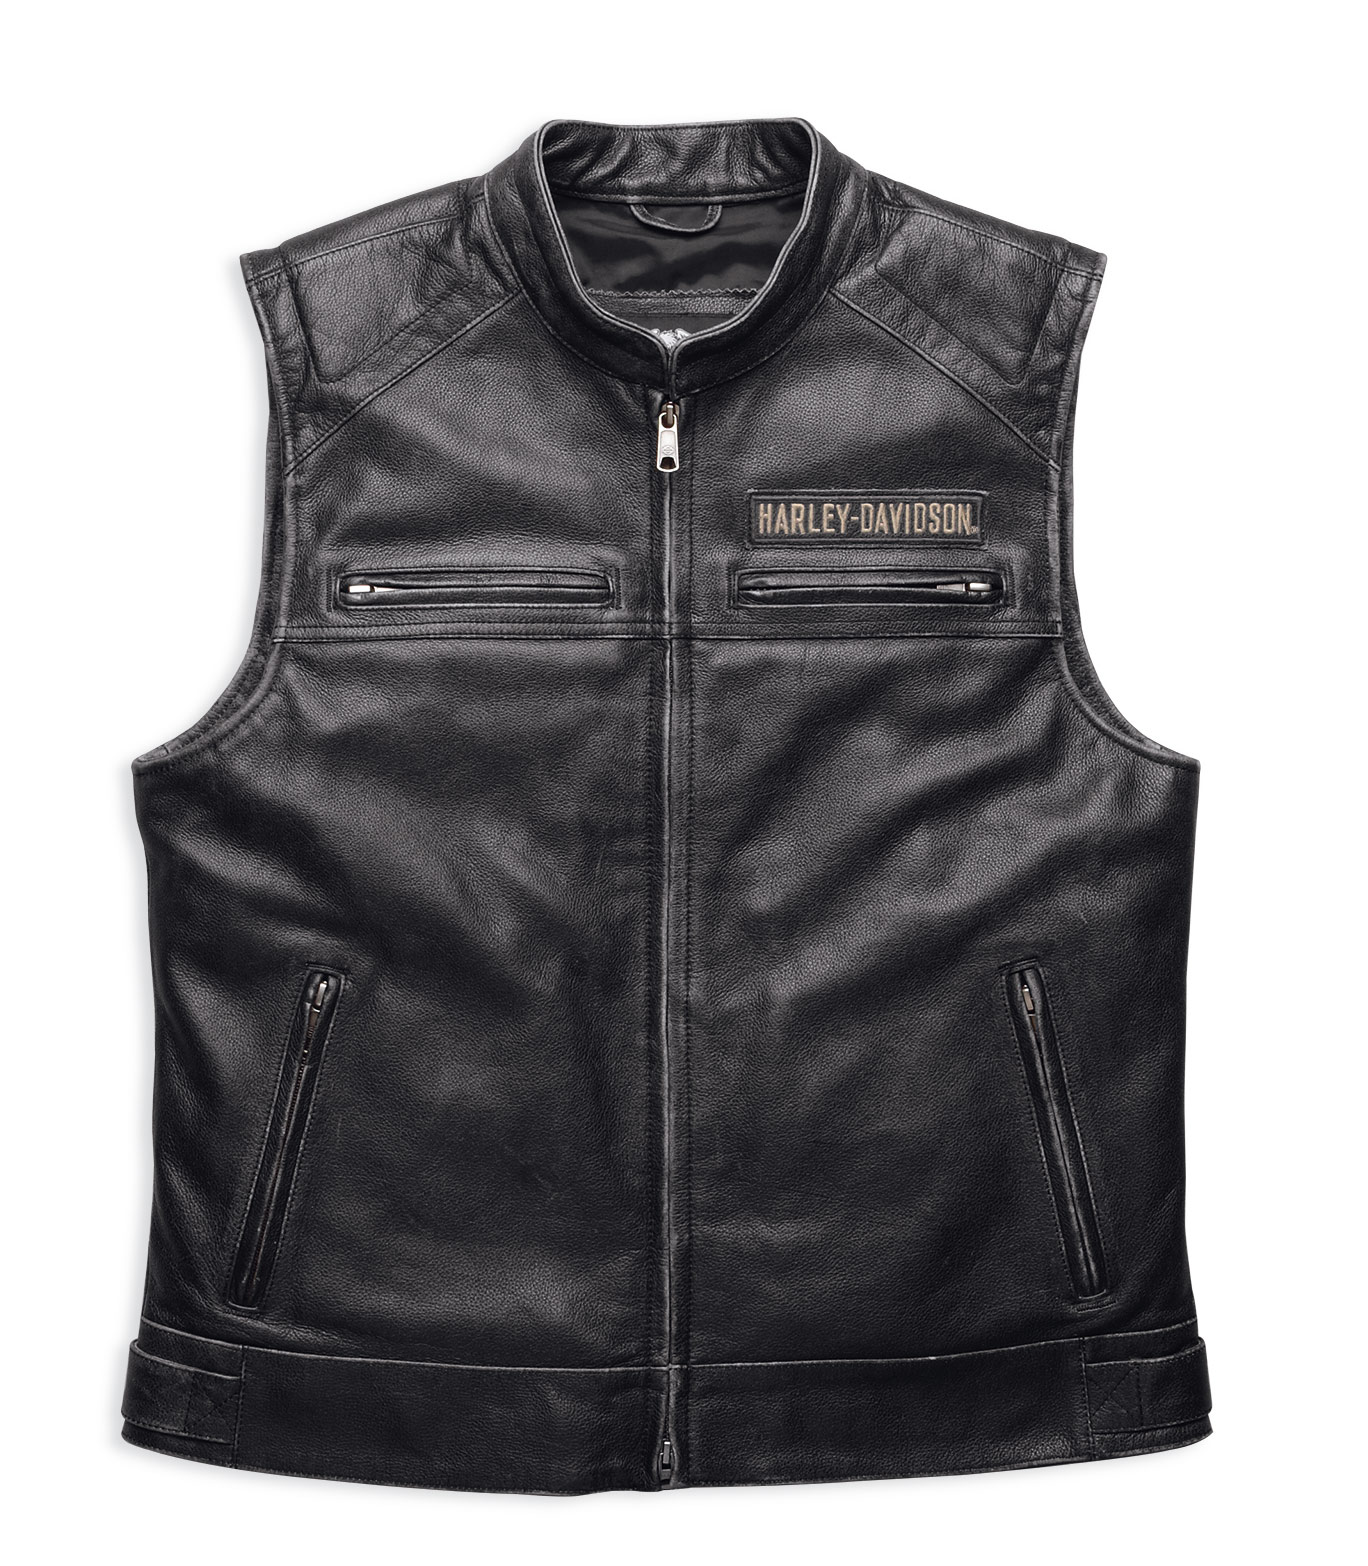 How to Choose a Biker Jacket